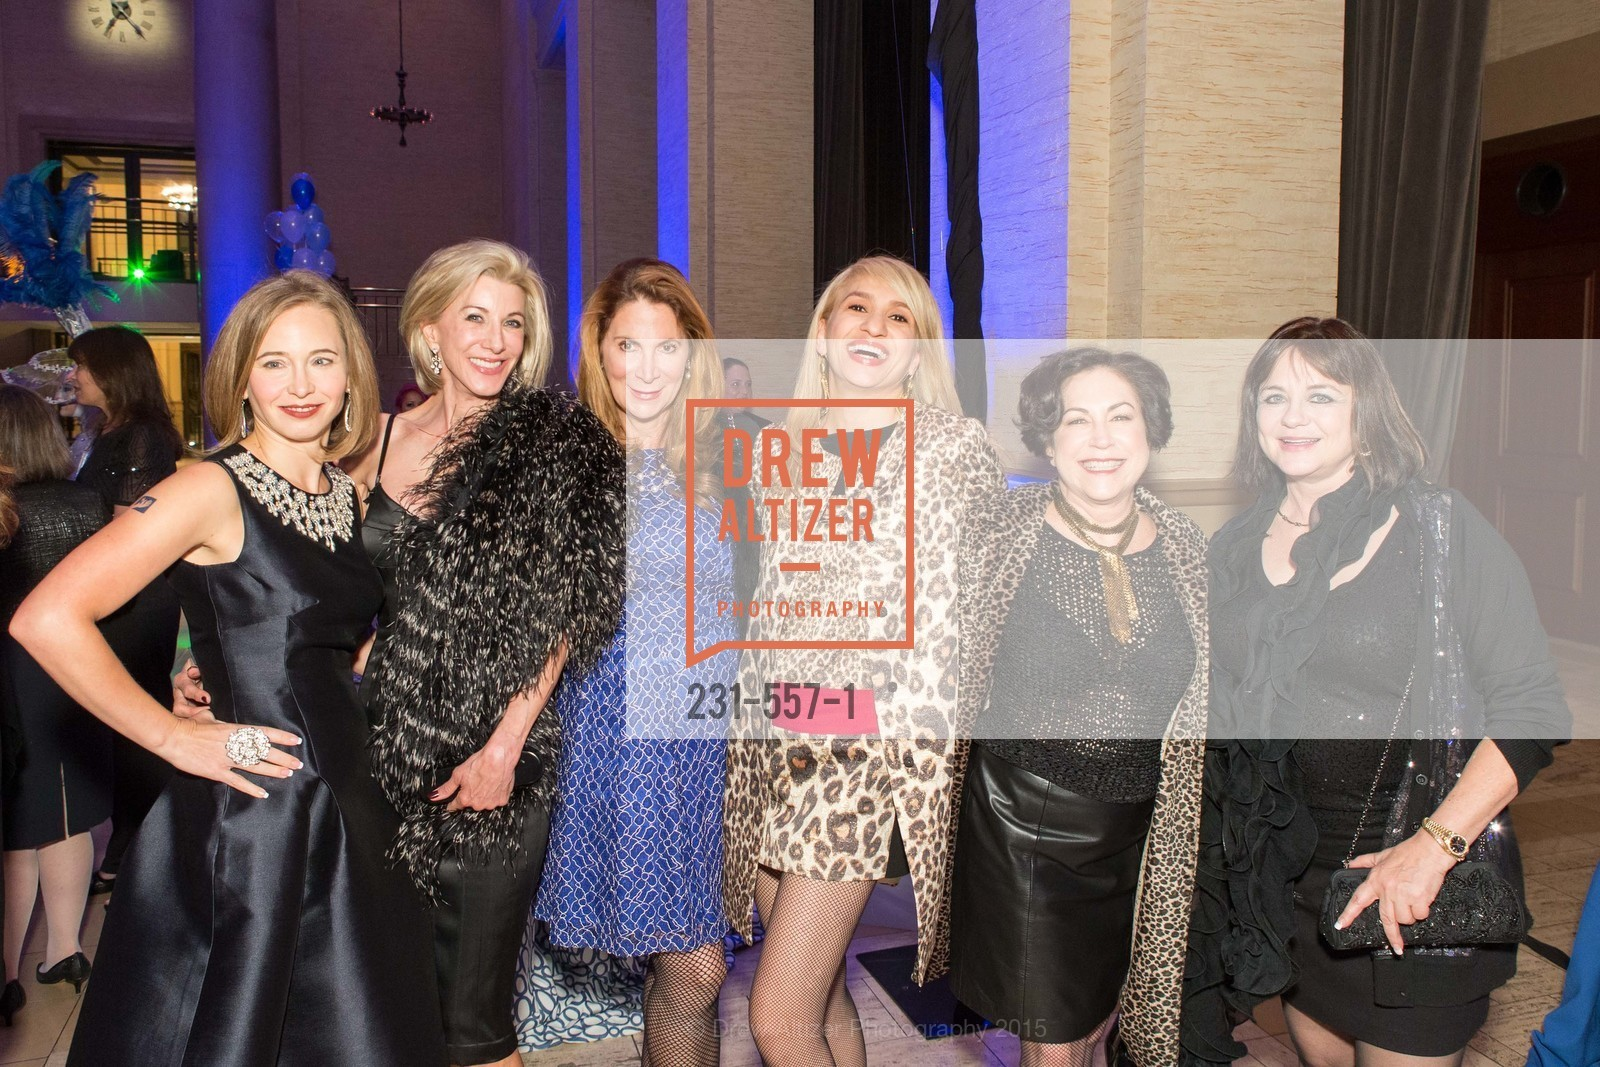 Mylea Charvat, Joan Stracquadanio, Patricia Ferrin Loucks, Navid Armstrong, Debbie Green, Rebecca Rogers, Cirque du Soiree 2015, The Bentley Reserve. 2525 Van Ness St, November 19th, 2015,Drew Altizer, Drew Altizer Photography, full-service agency, private events, San Francisco photographer, photographer california